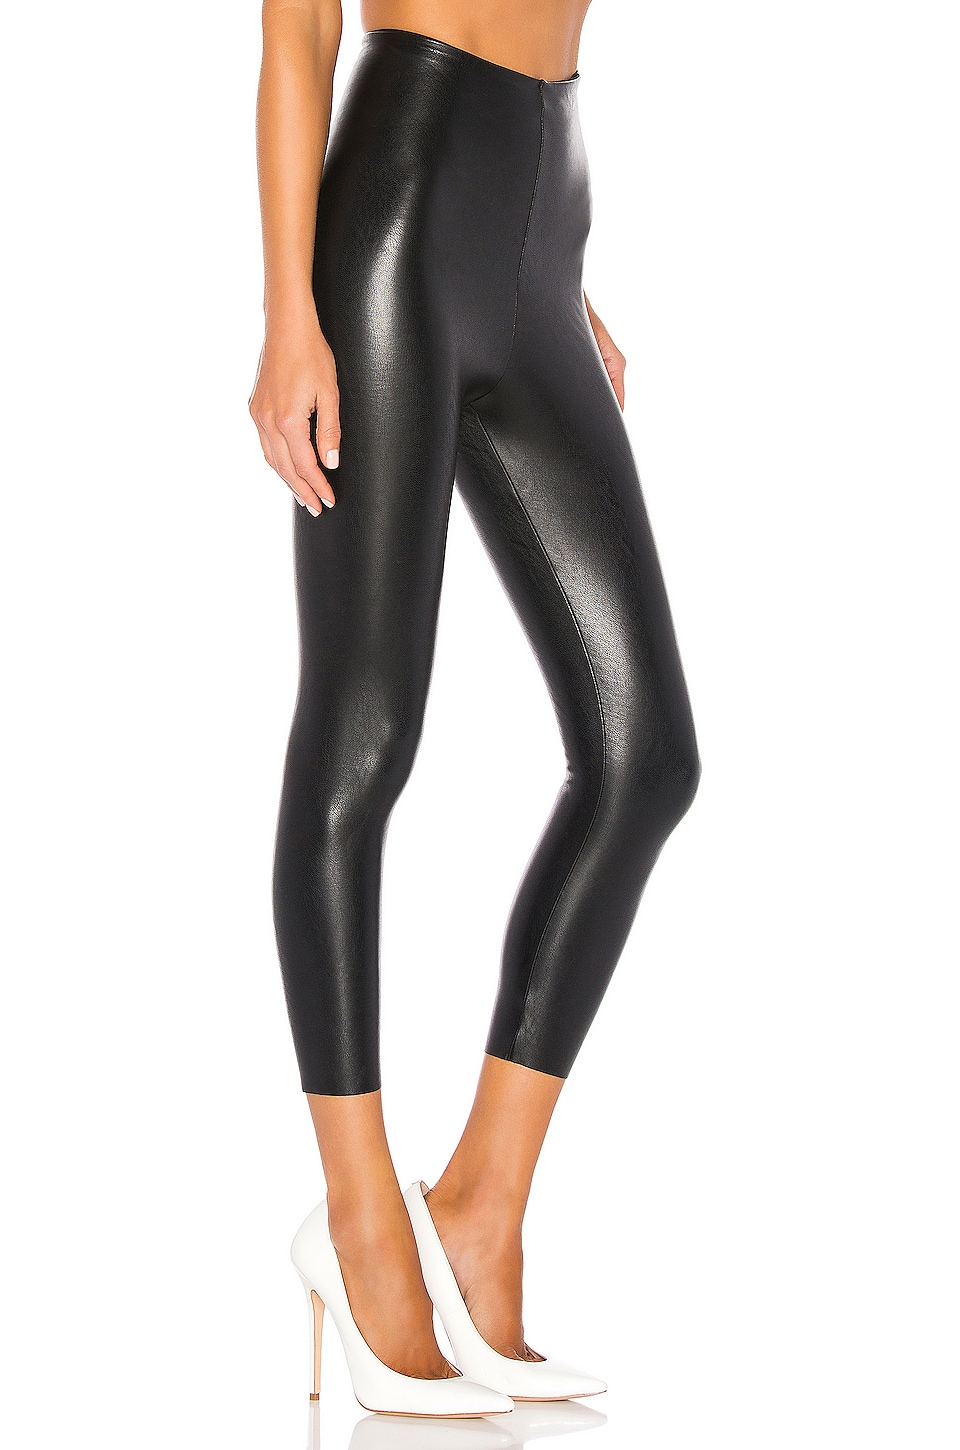 Perfect Control Faux Leather Capri, view 2, click to view large image.